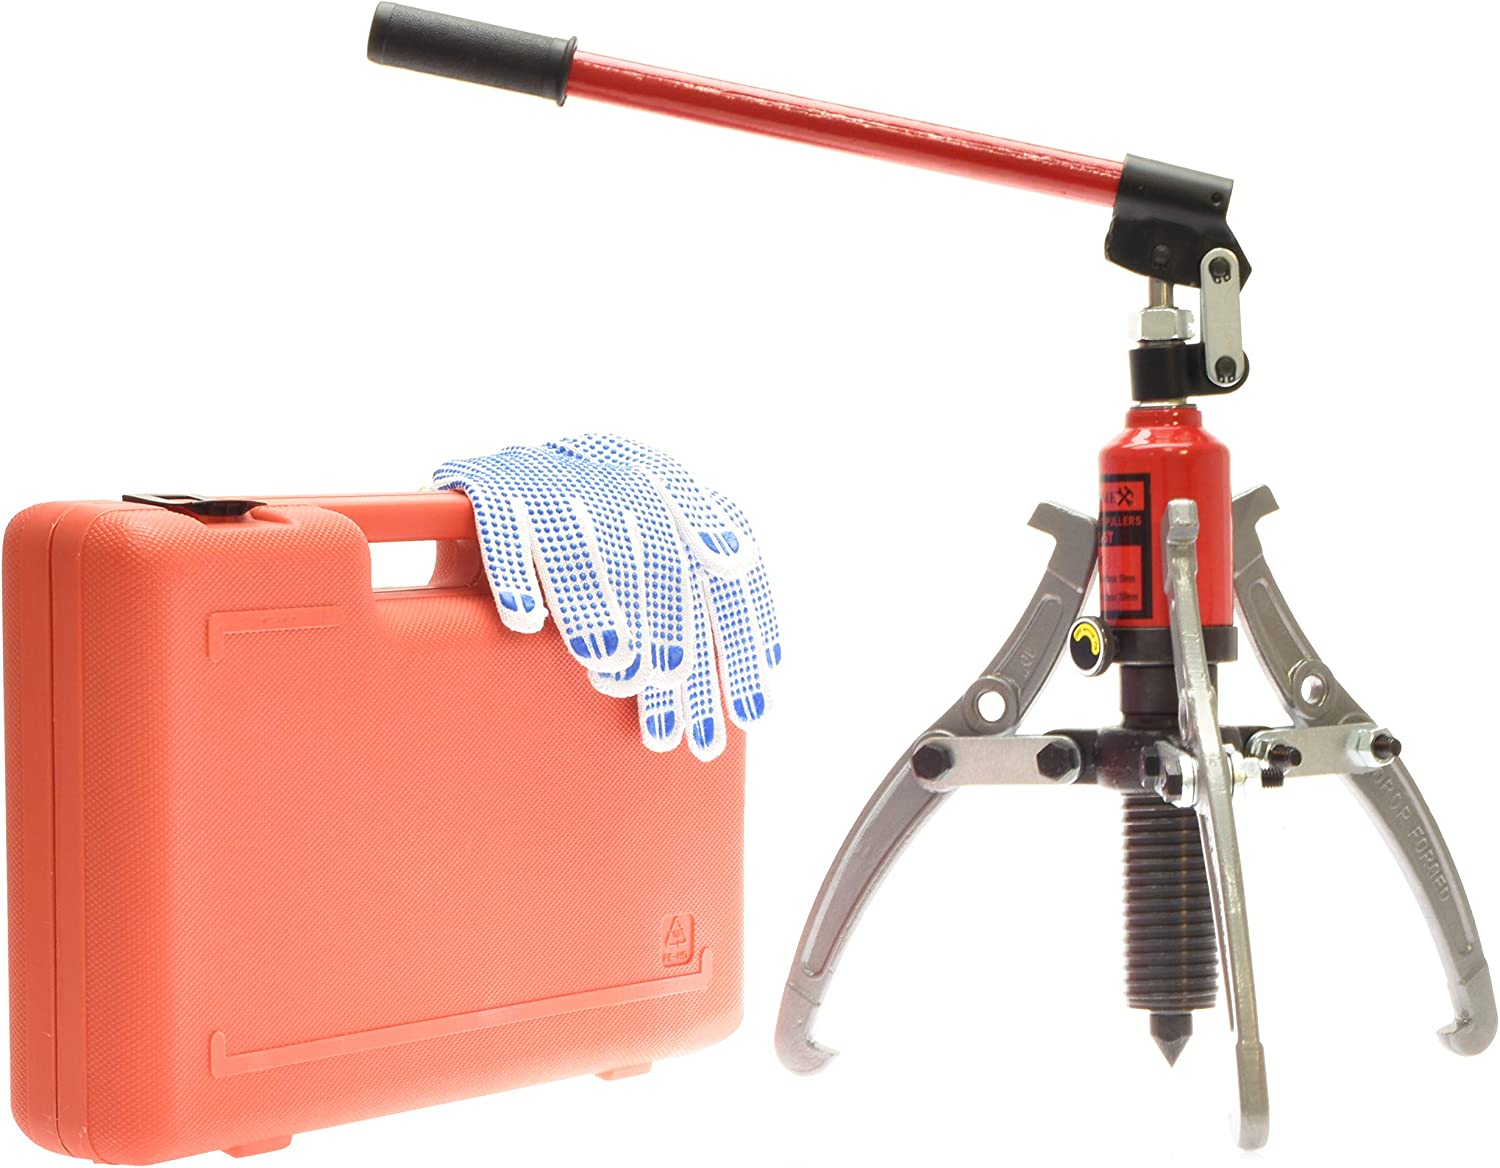 Multi-Function Hydraulic Gear Puller Kit 1 Pack//S